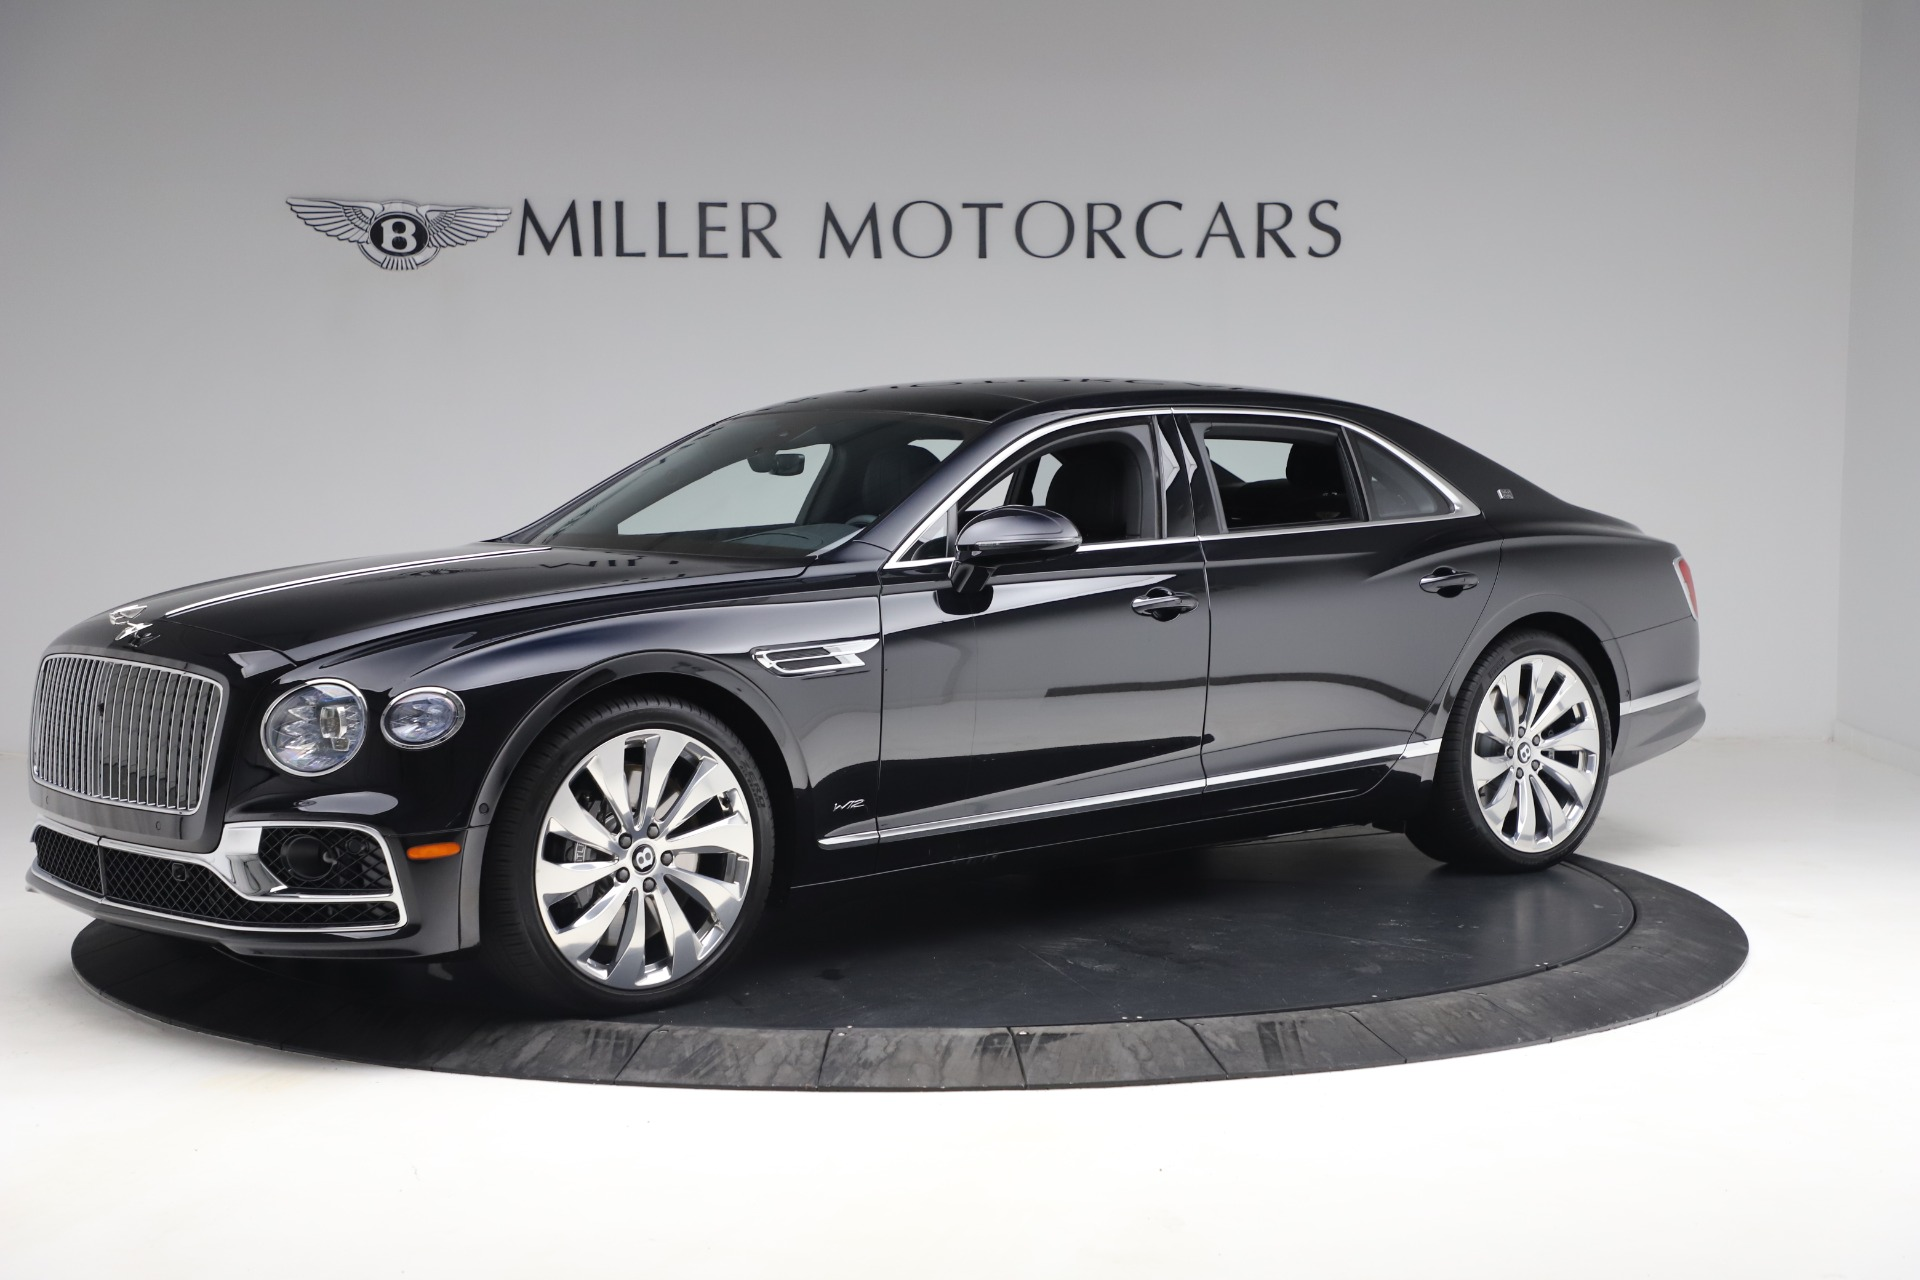 New 2020 Bentley Flying Spur W12 1st Edition for sale $276,070 at McLaren Greenwich in Greenwich CT 06830 1